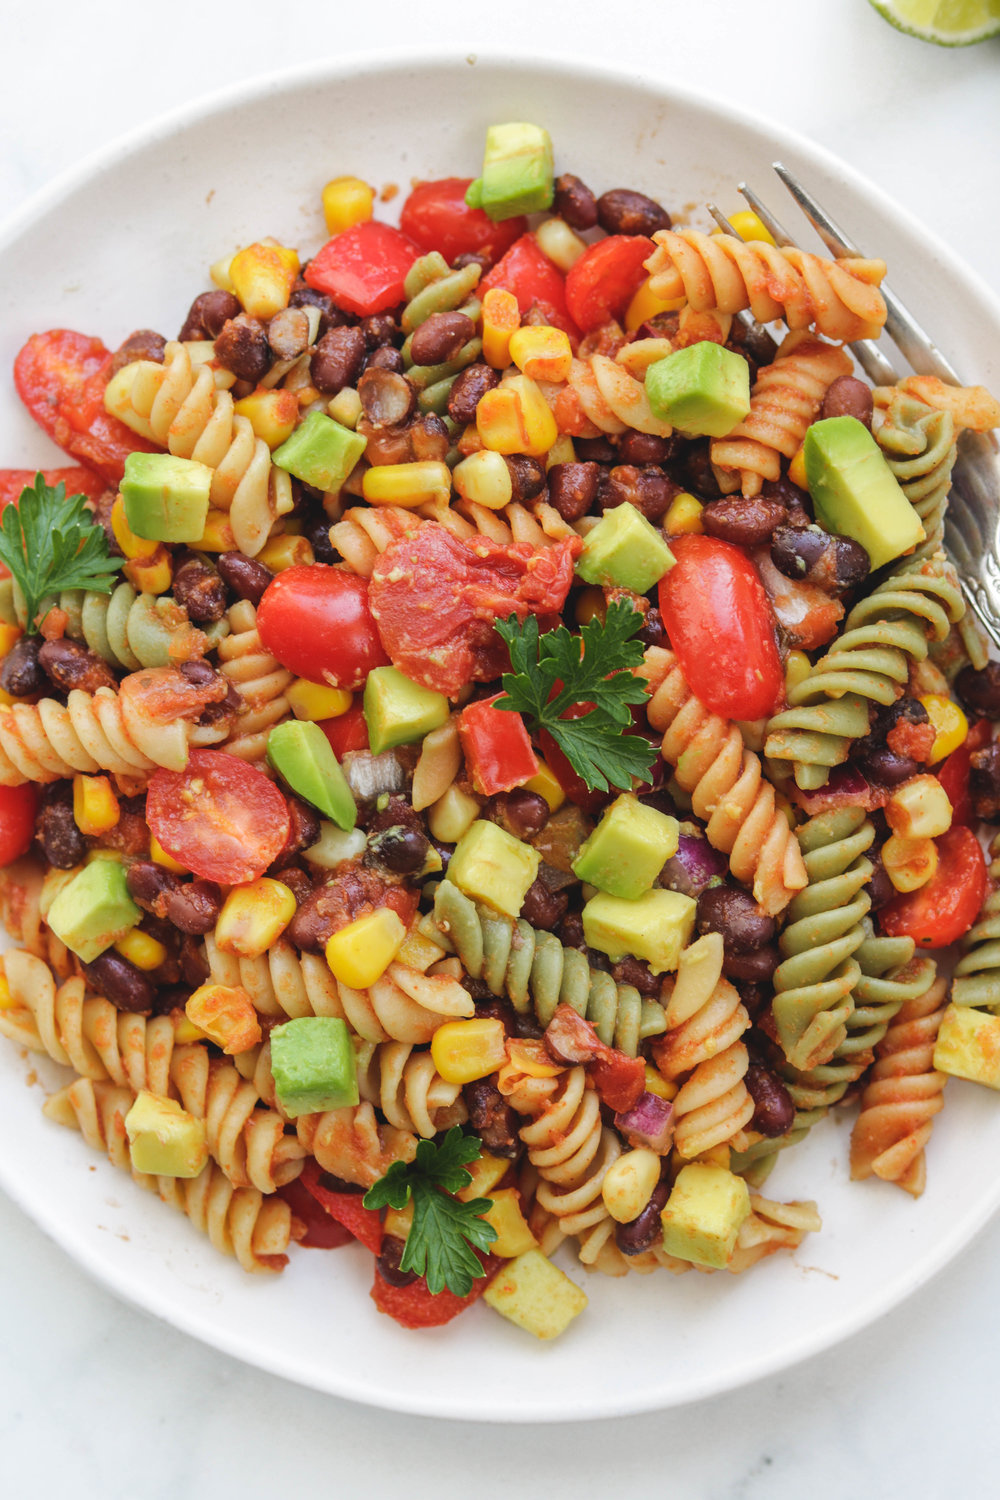 Vegan Mexican Pasta Salad Clos Up (1 of 1).jpg